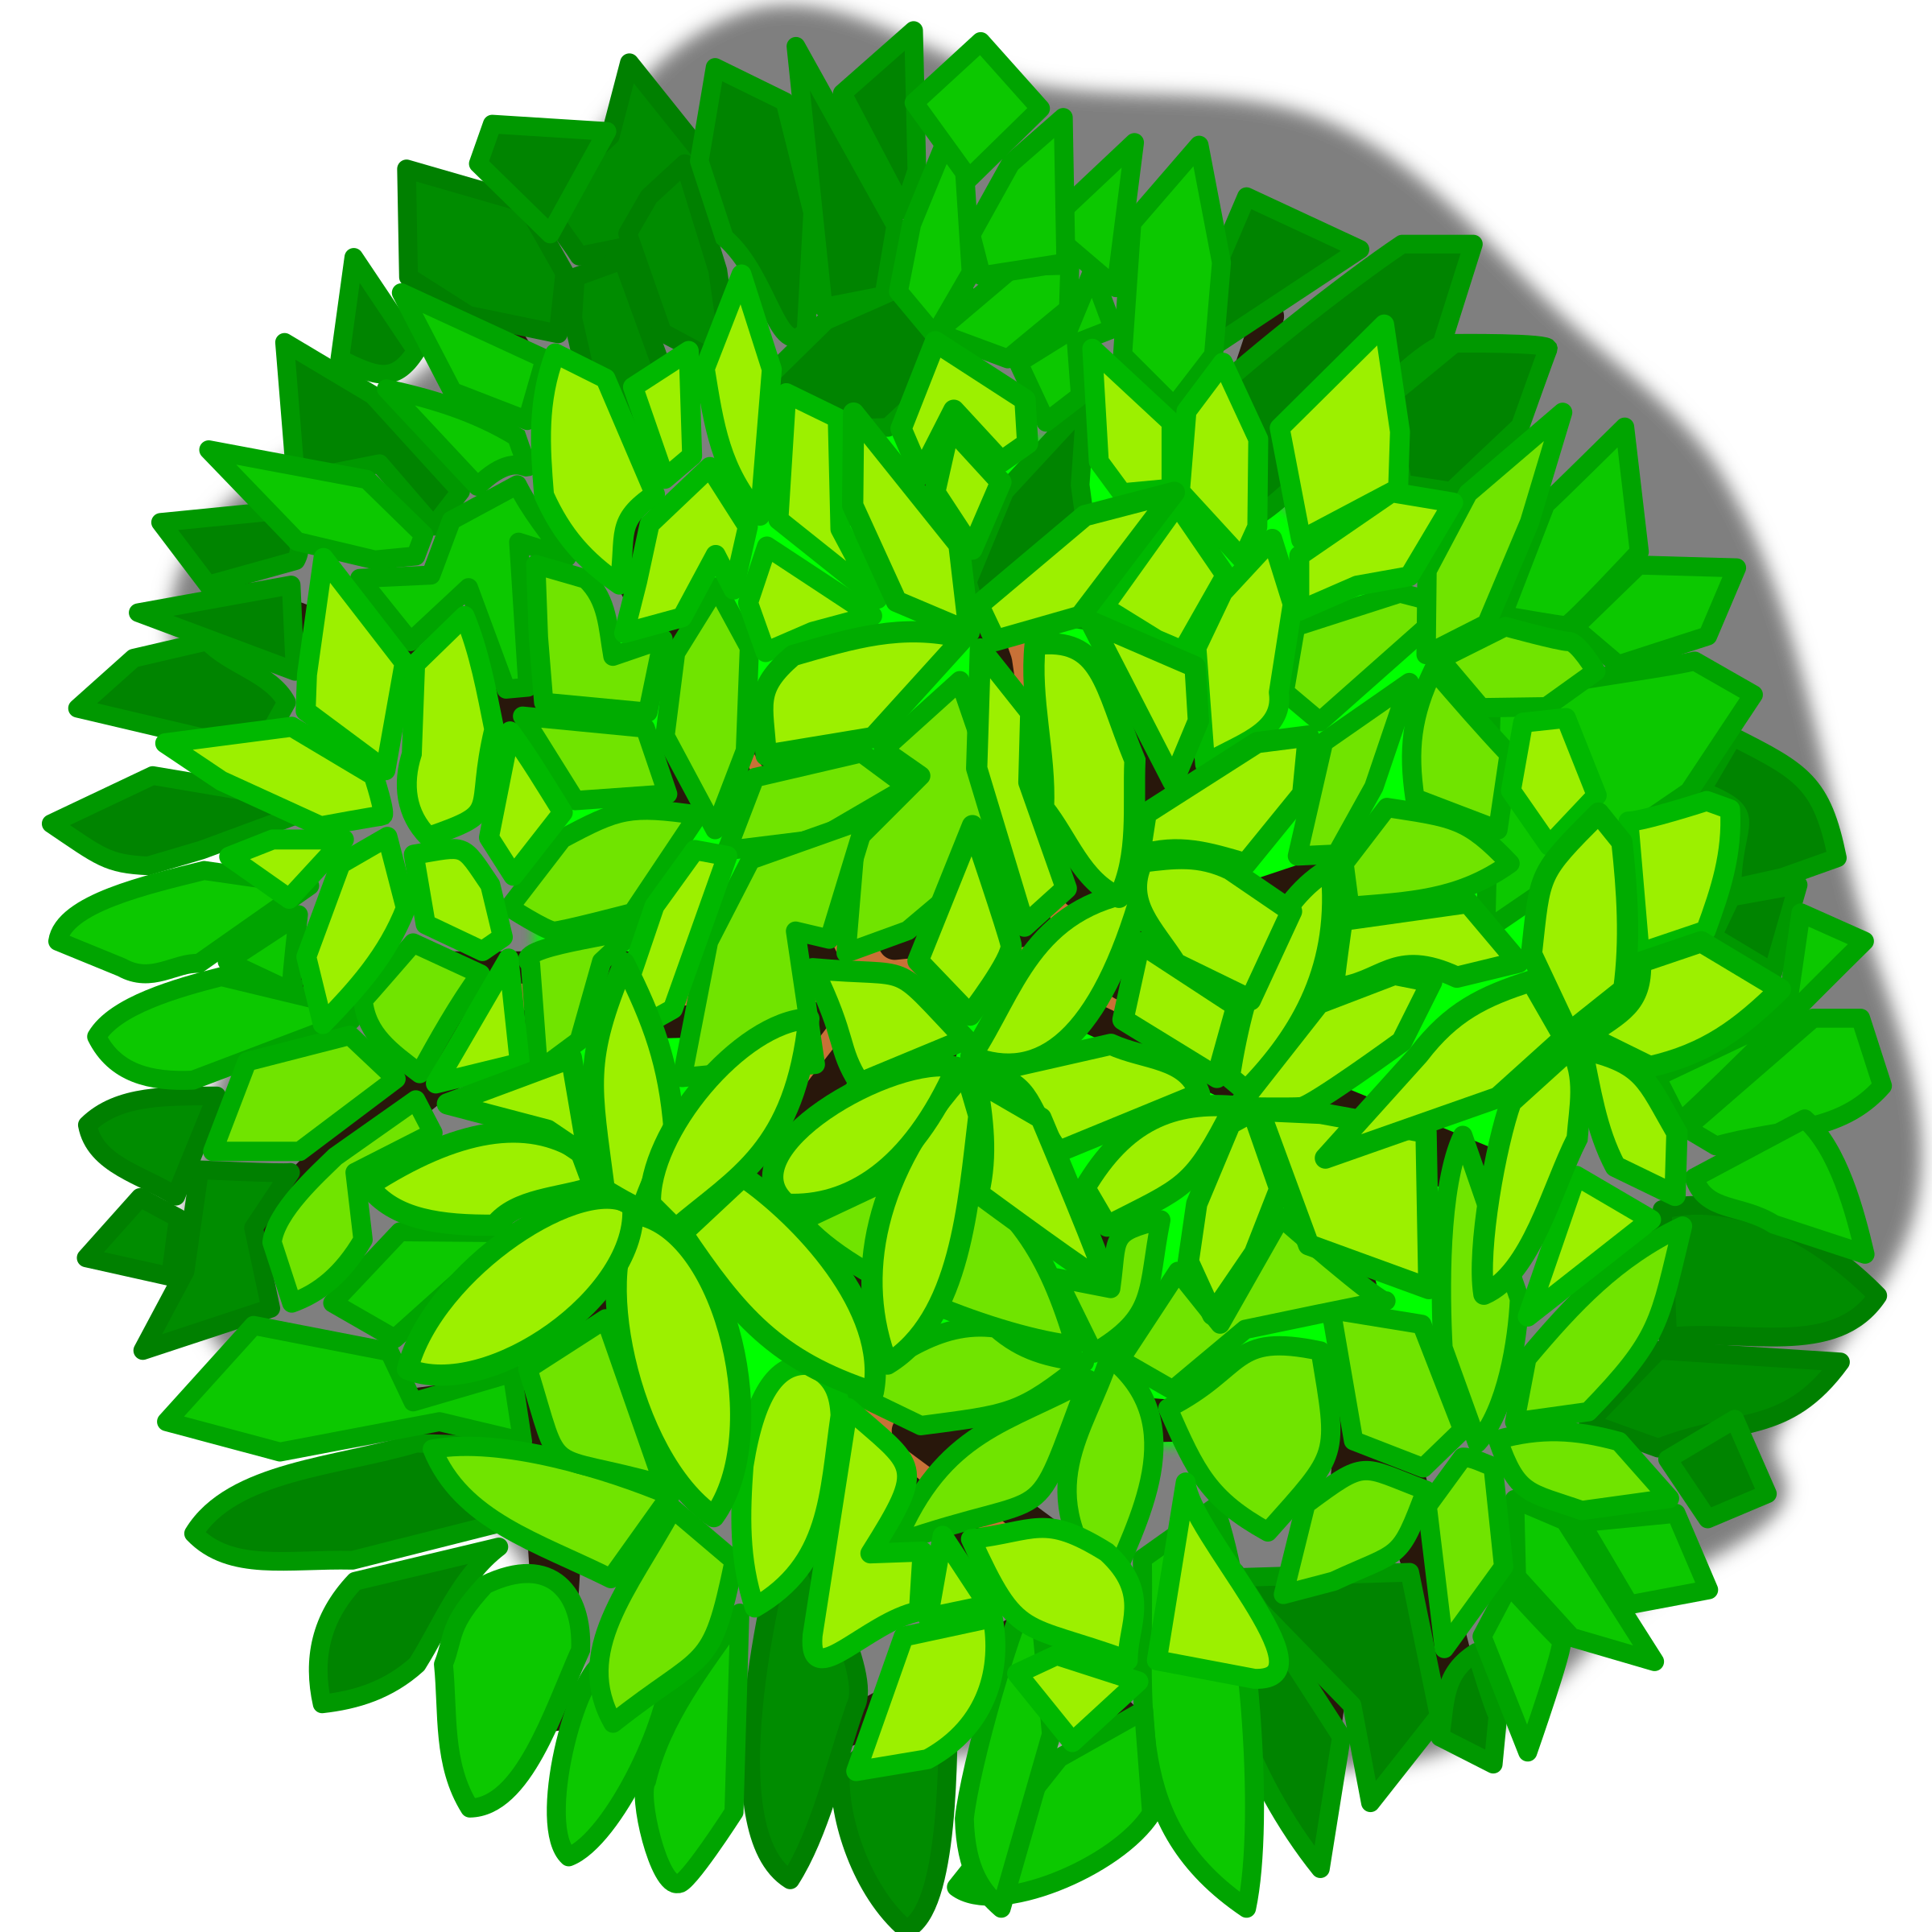 Clipart - Tree top view picture transparent